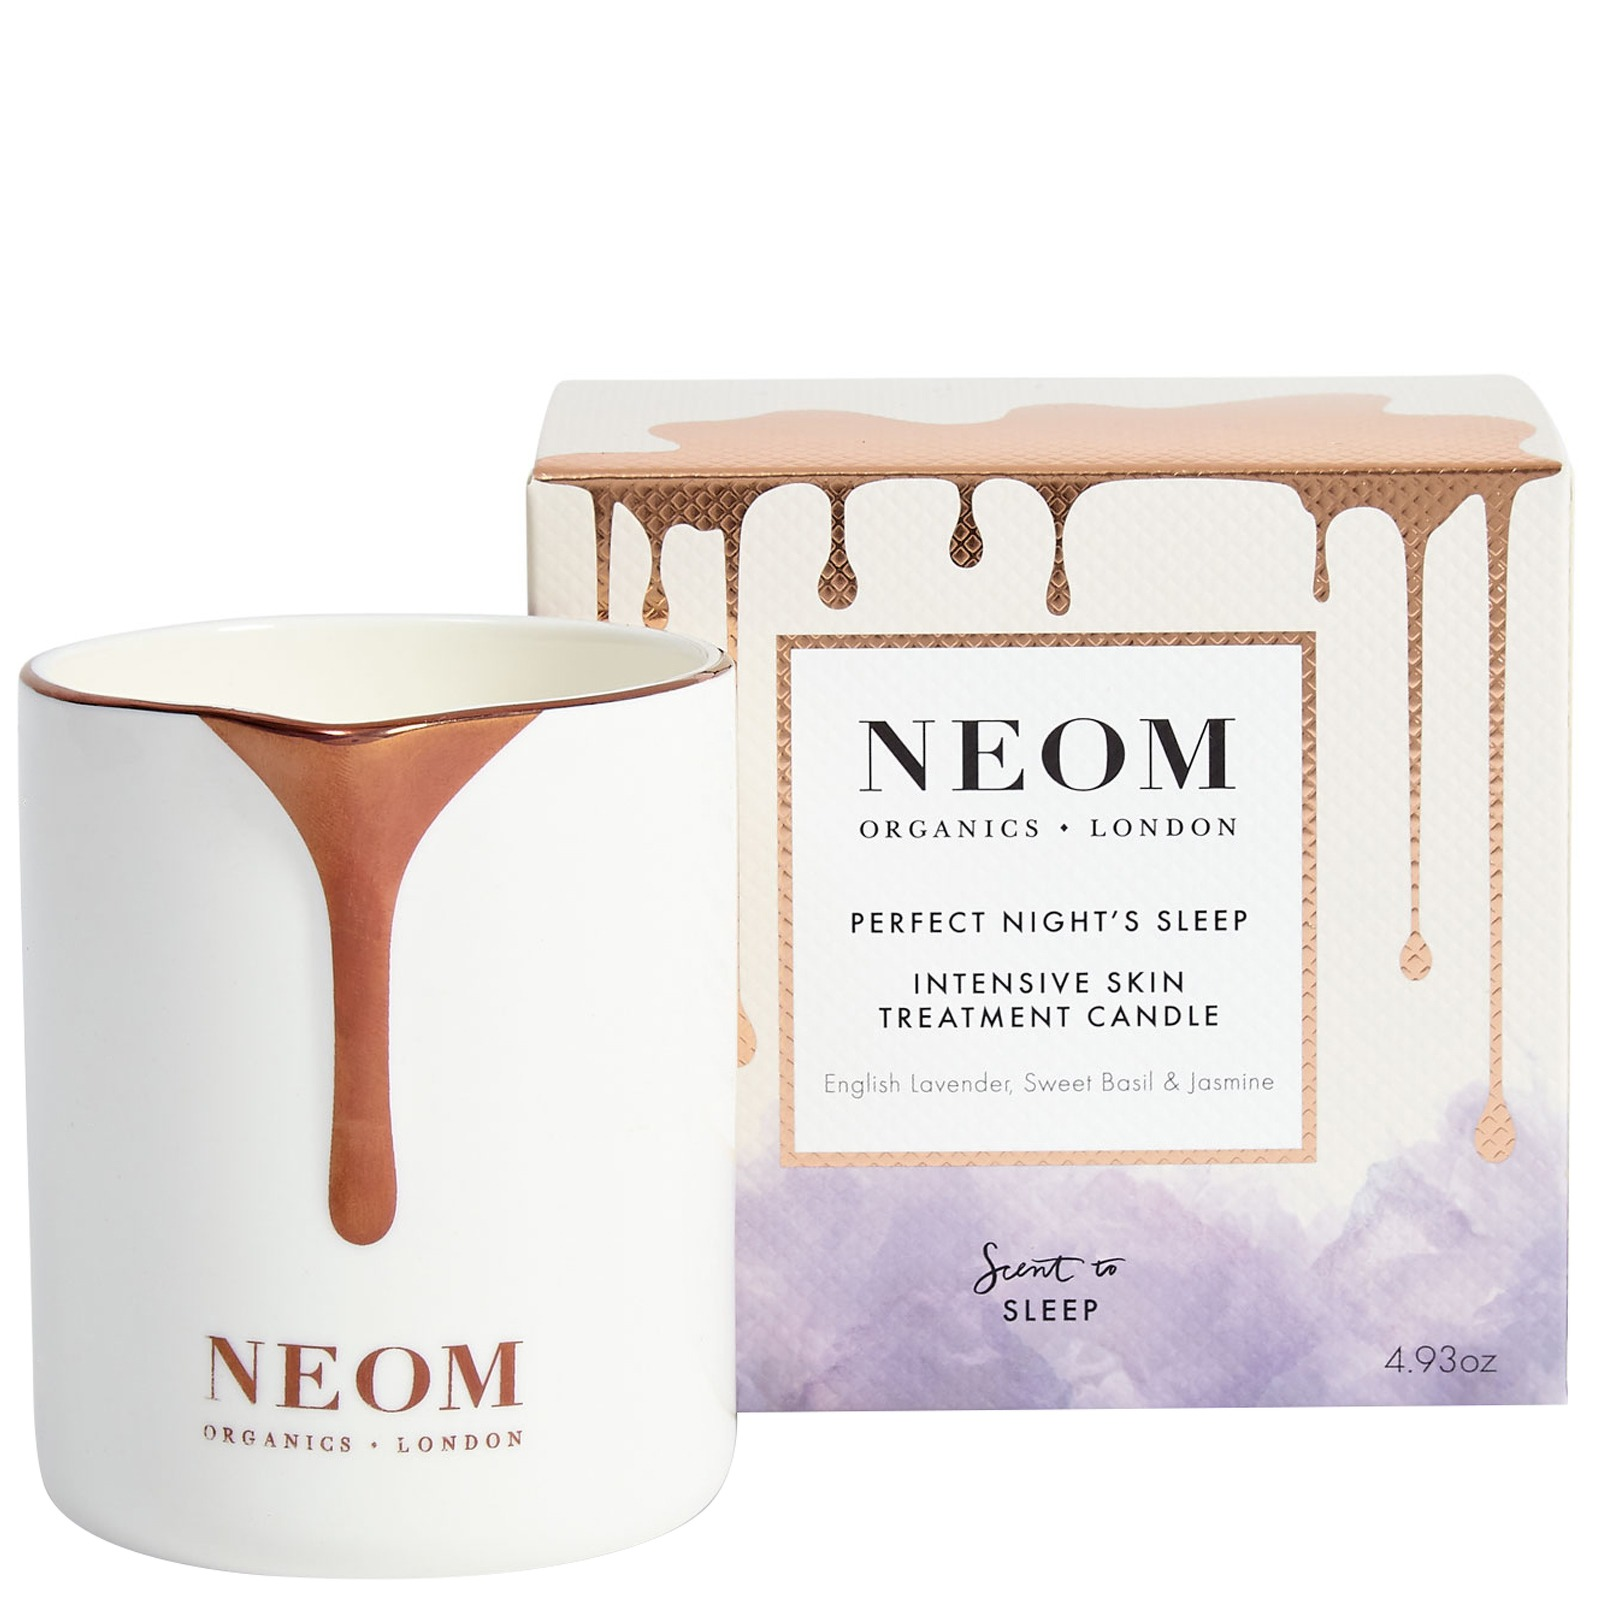 Neom Organics London Scent To Sleep Perfect Night's Sleep Intensive Skin Treatment Candle 140g